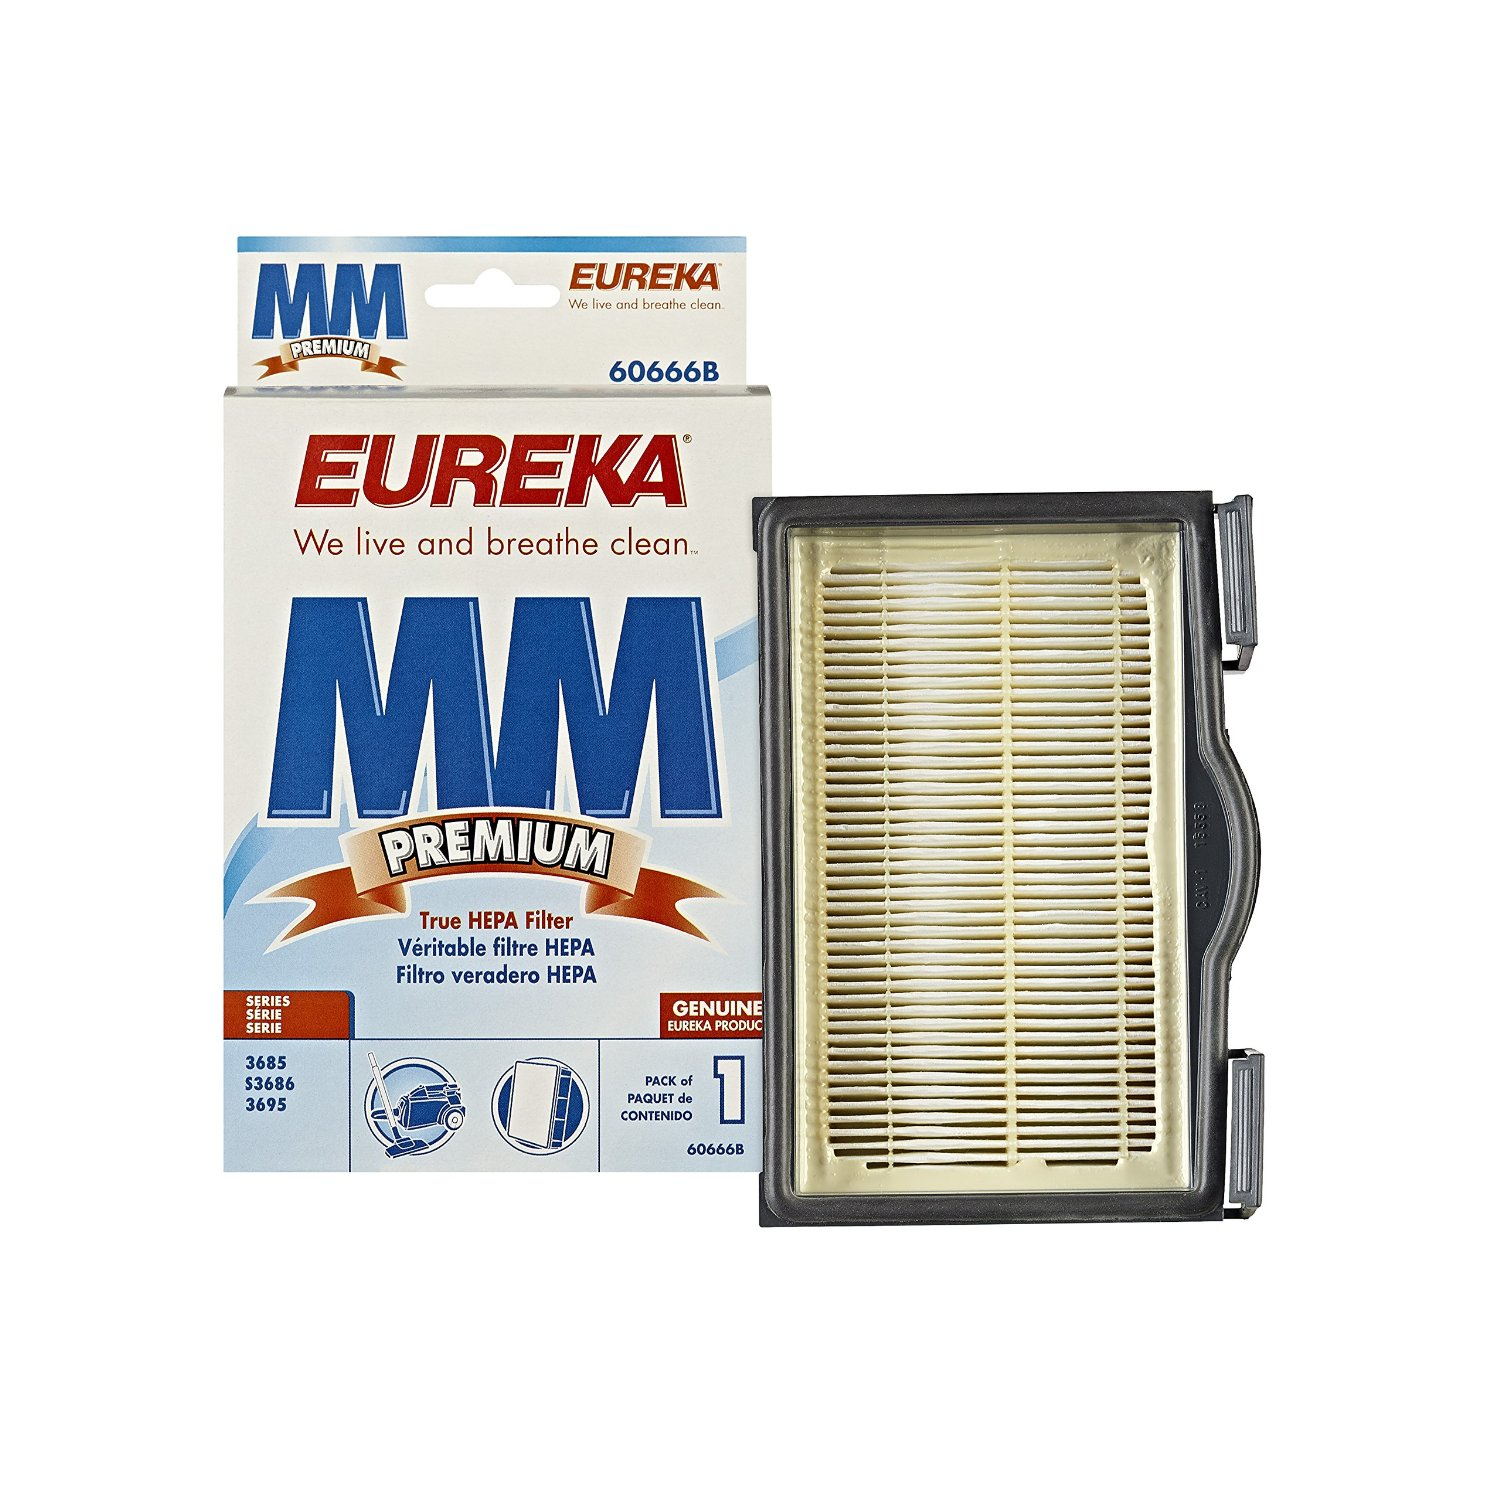 Eureka MM and HF-8 HEPA Vacuum Filter